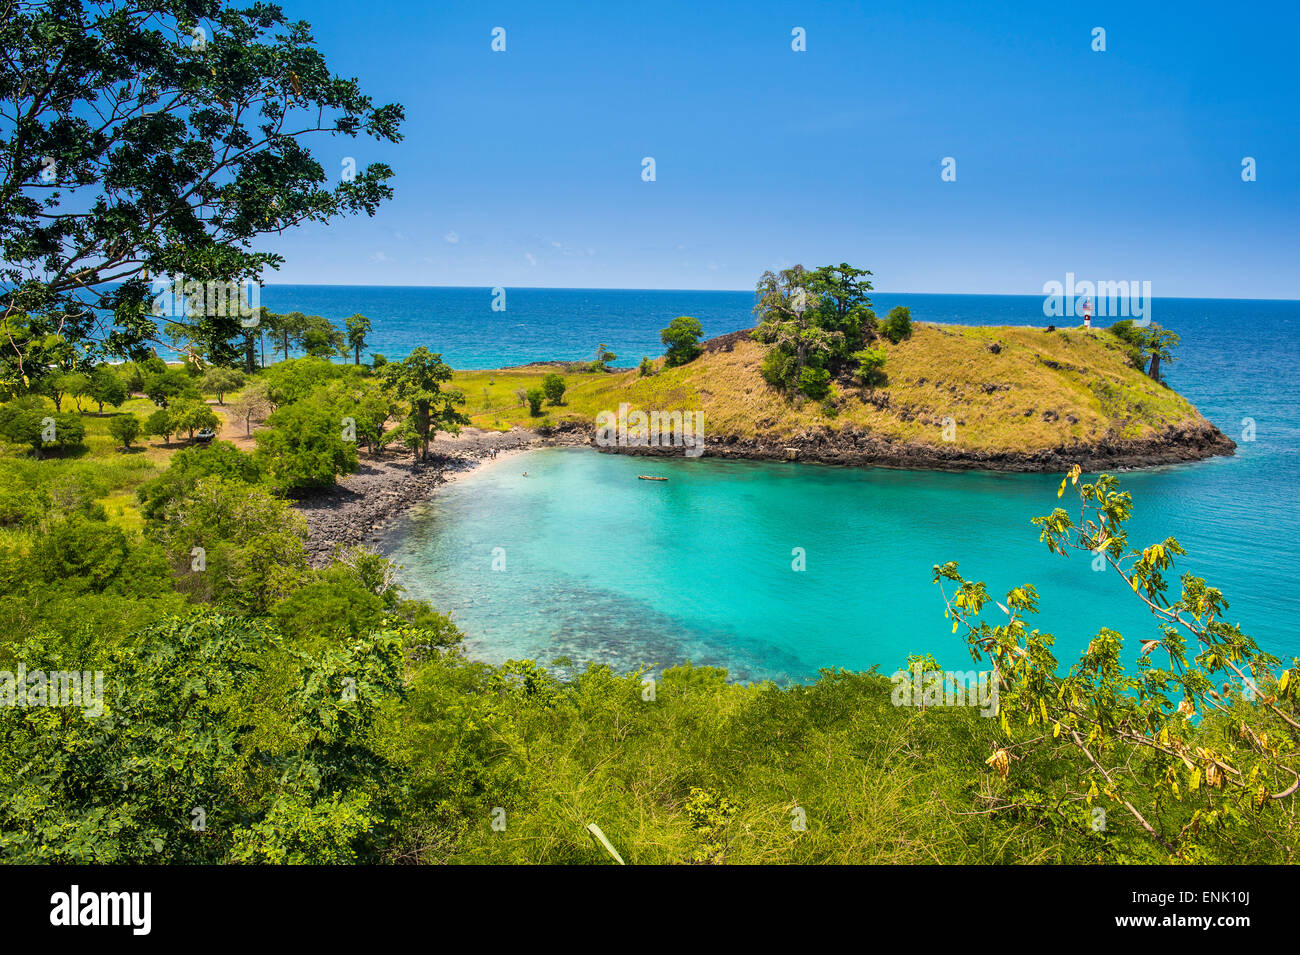 The turquoise waters of Lagoa Azul in northern Sao Tome, Sao Tome and Principe, Atlantic Ocean, Africa - Stock Image